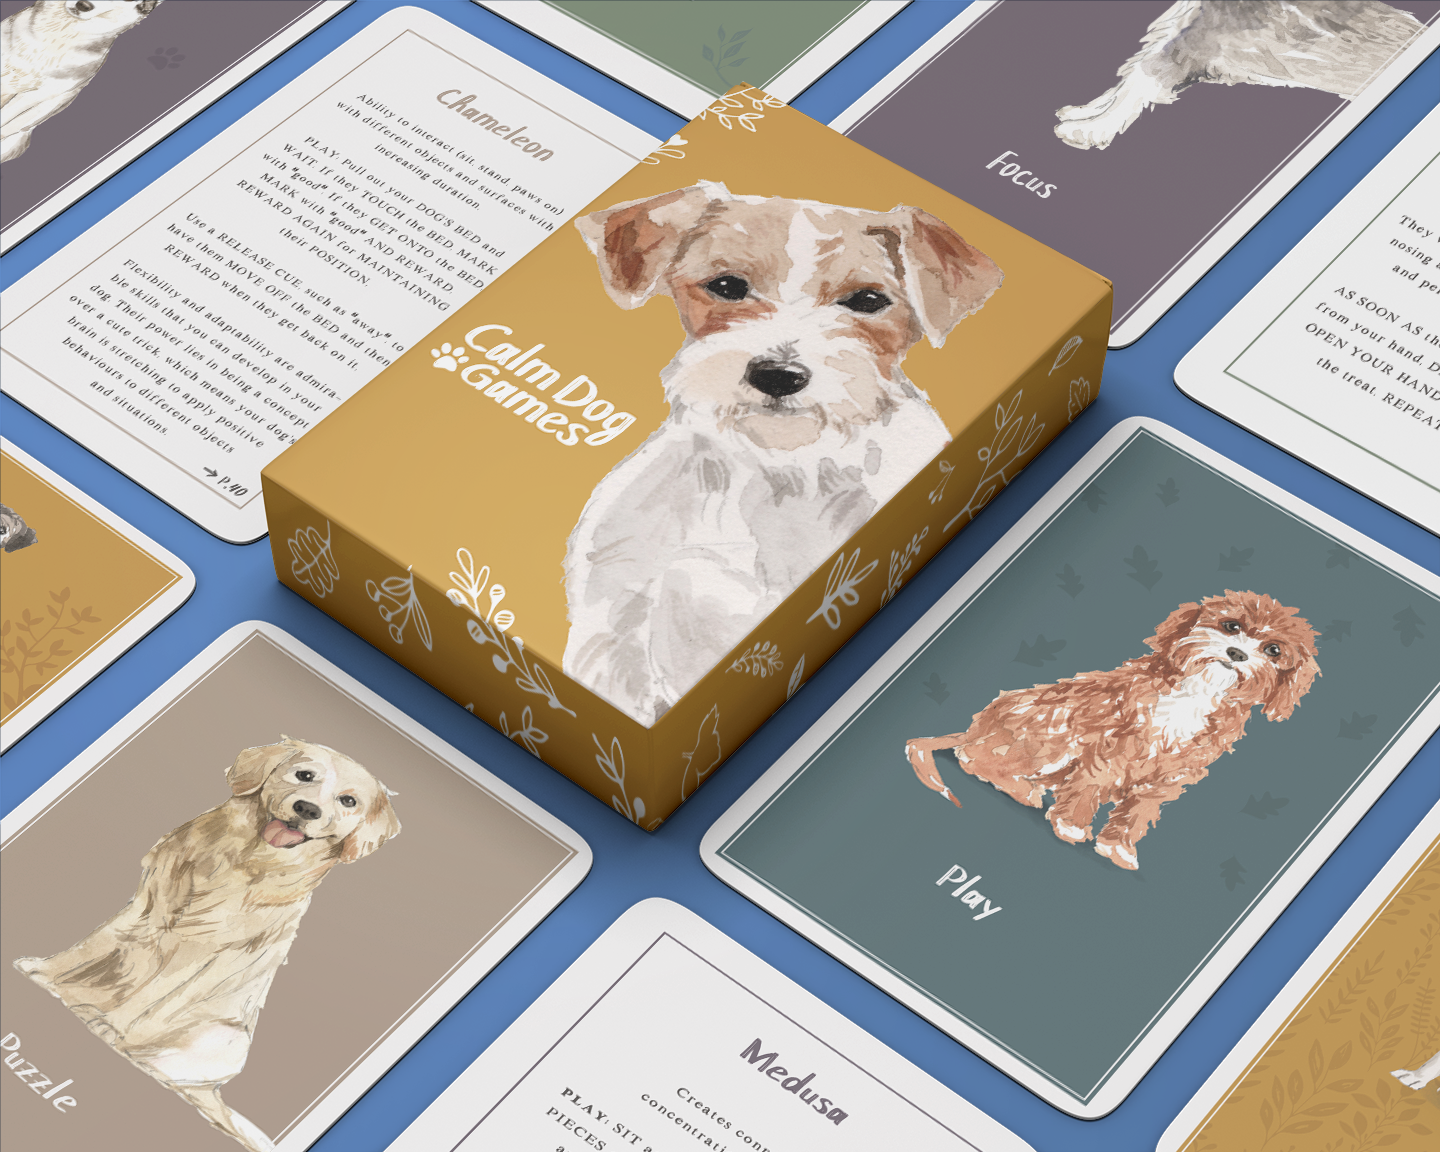 Calm dog games, brain training for dogs, brain games for dogs, games cards for dogs, calm dog games cards